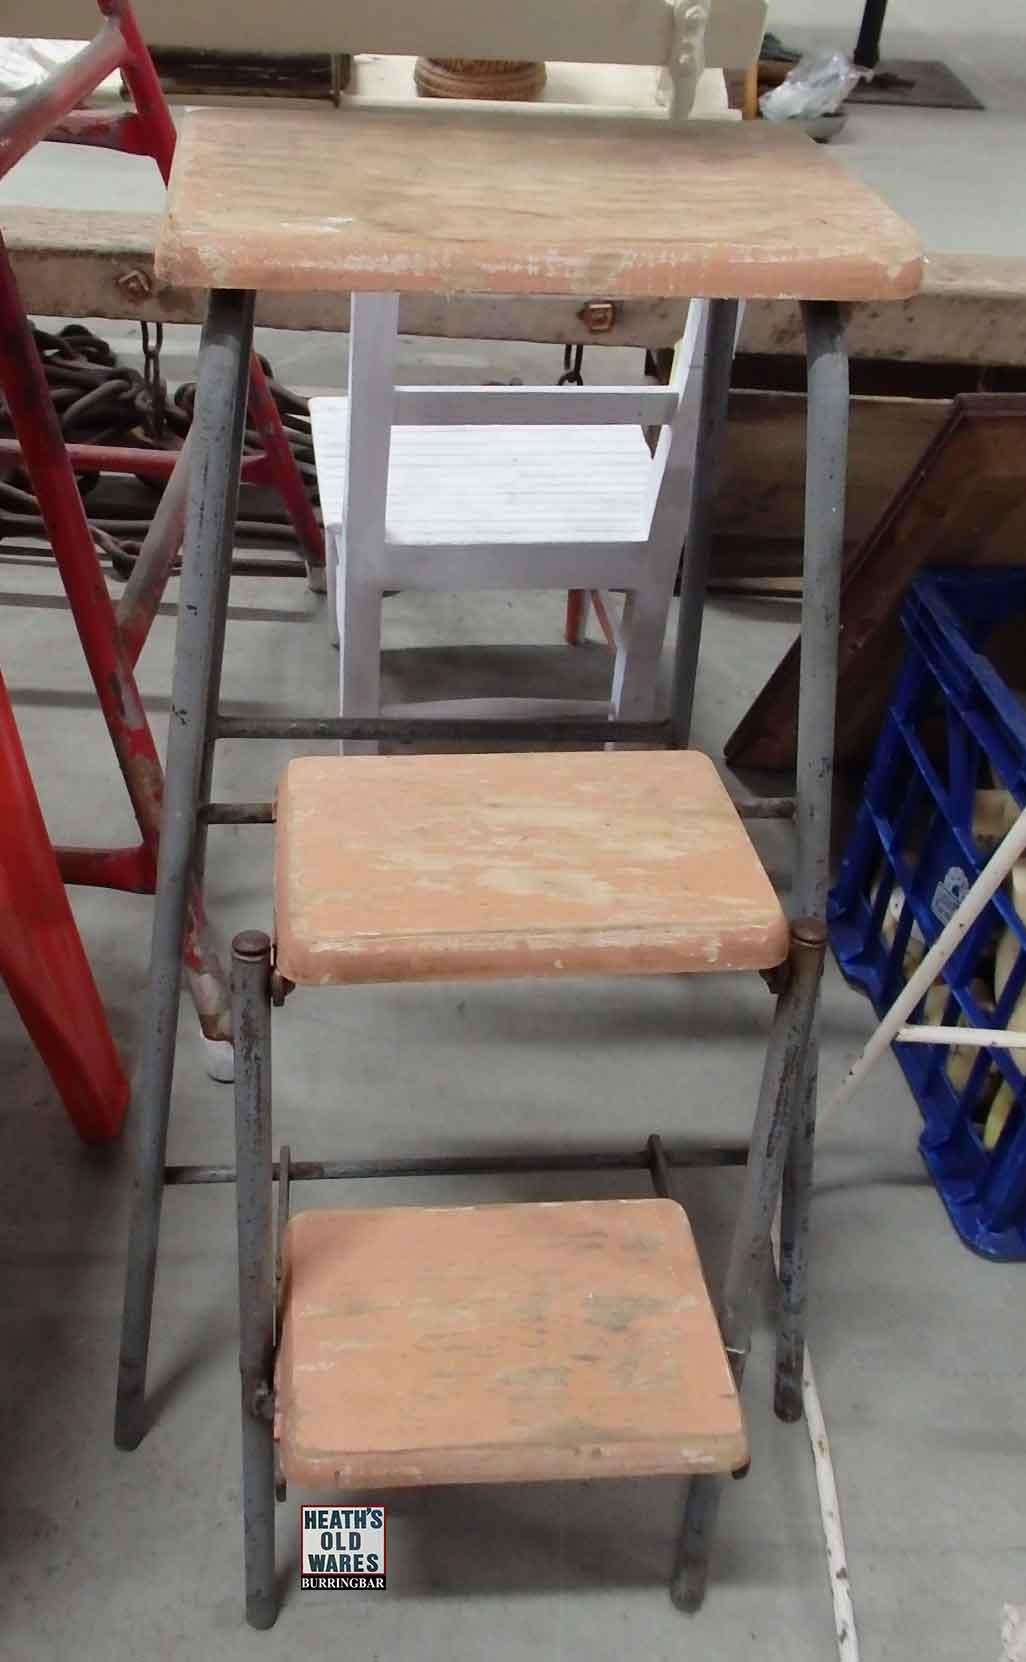 Vintage step stool chair $125 for sale at Heaths Old Wares, Collectables, Antiques & Industrial Antiques, 19-21 Broadway, Burringbar NSW 2483 Ph 0266771181 open 7 days